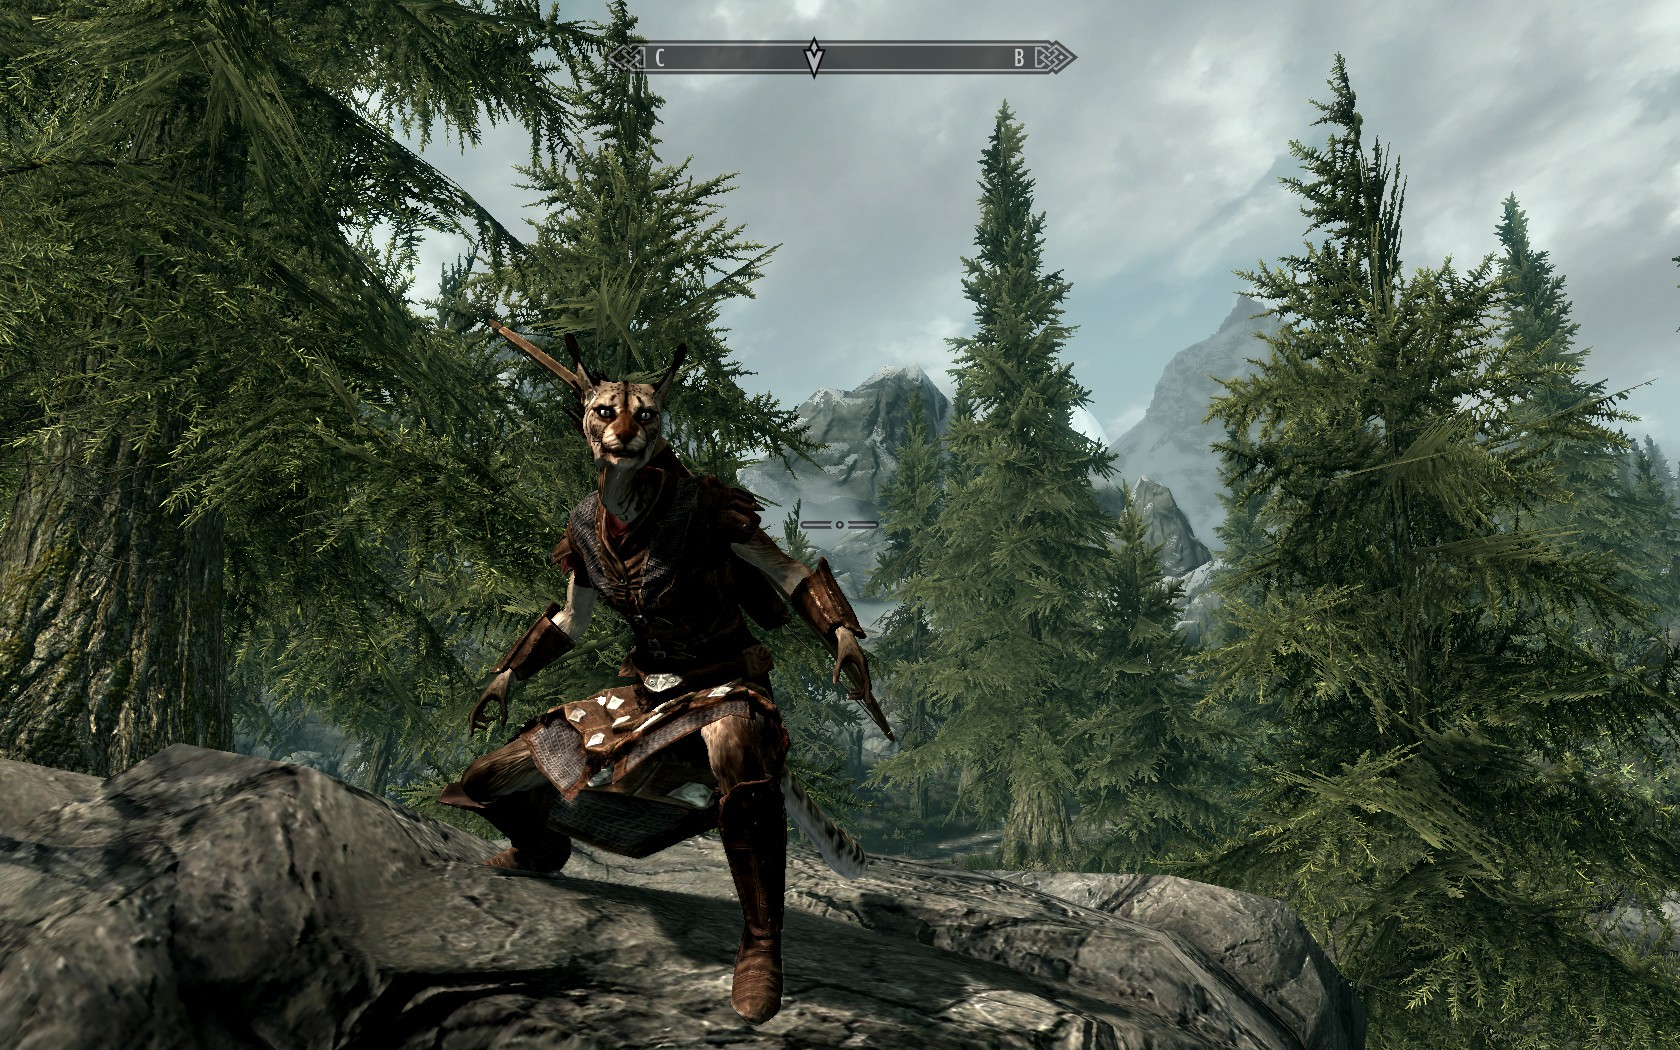 To those that use two-handed weapons in skyrim